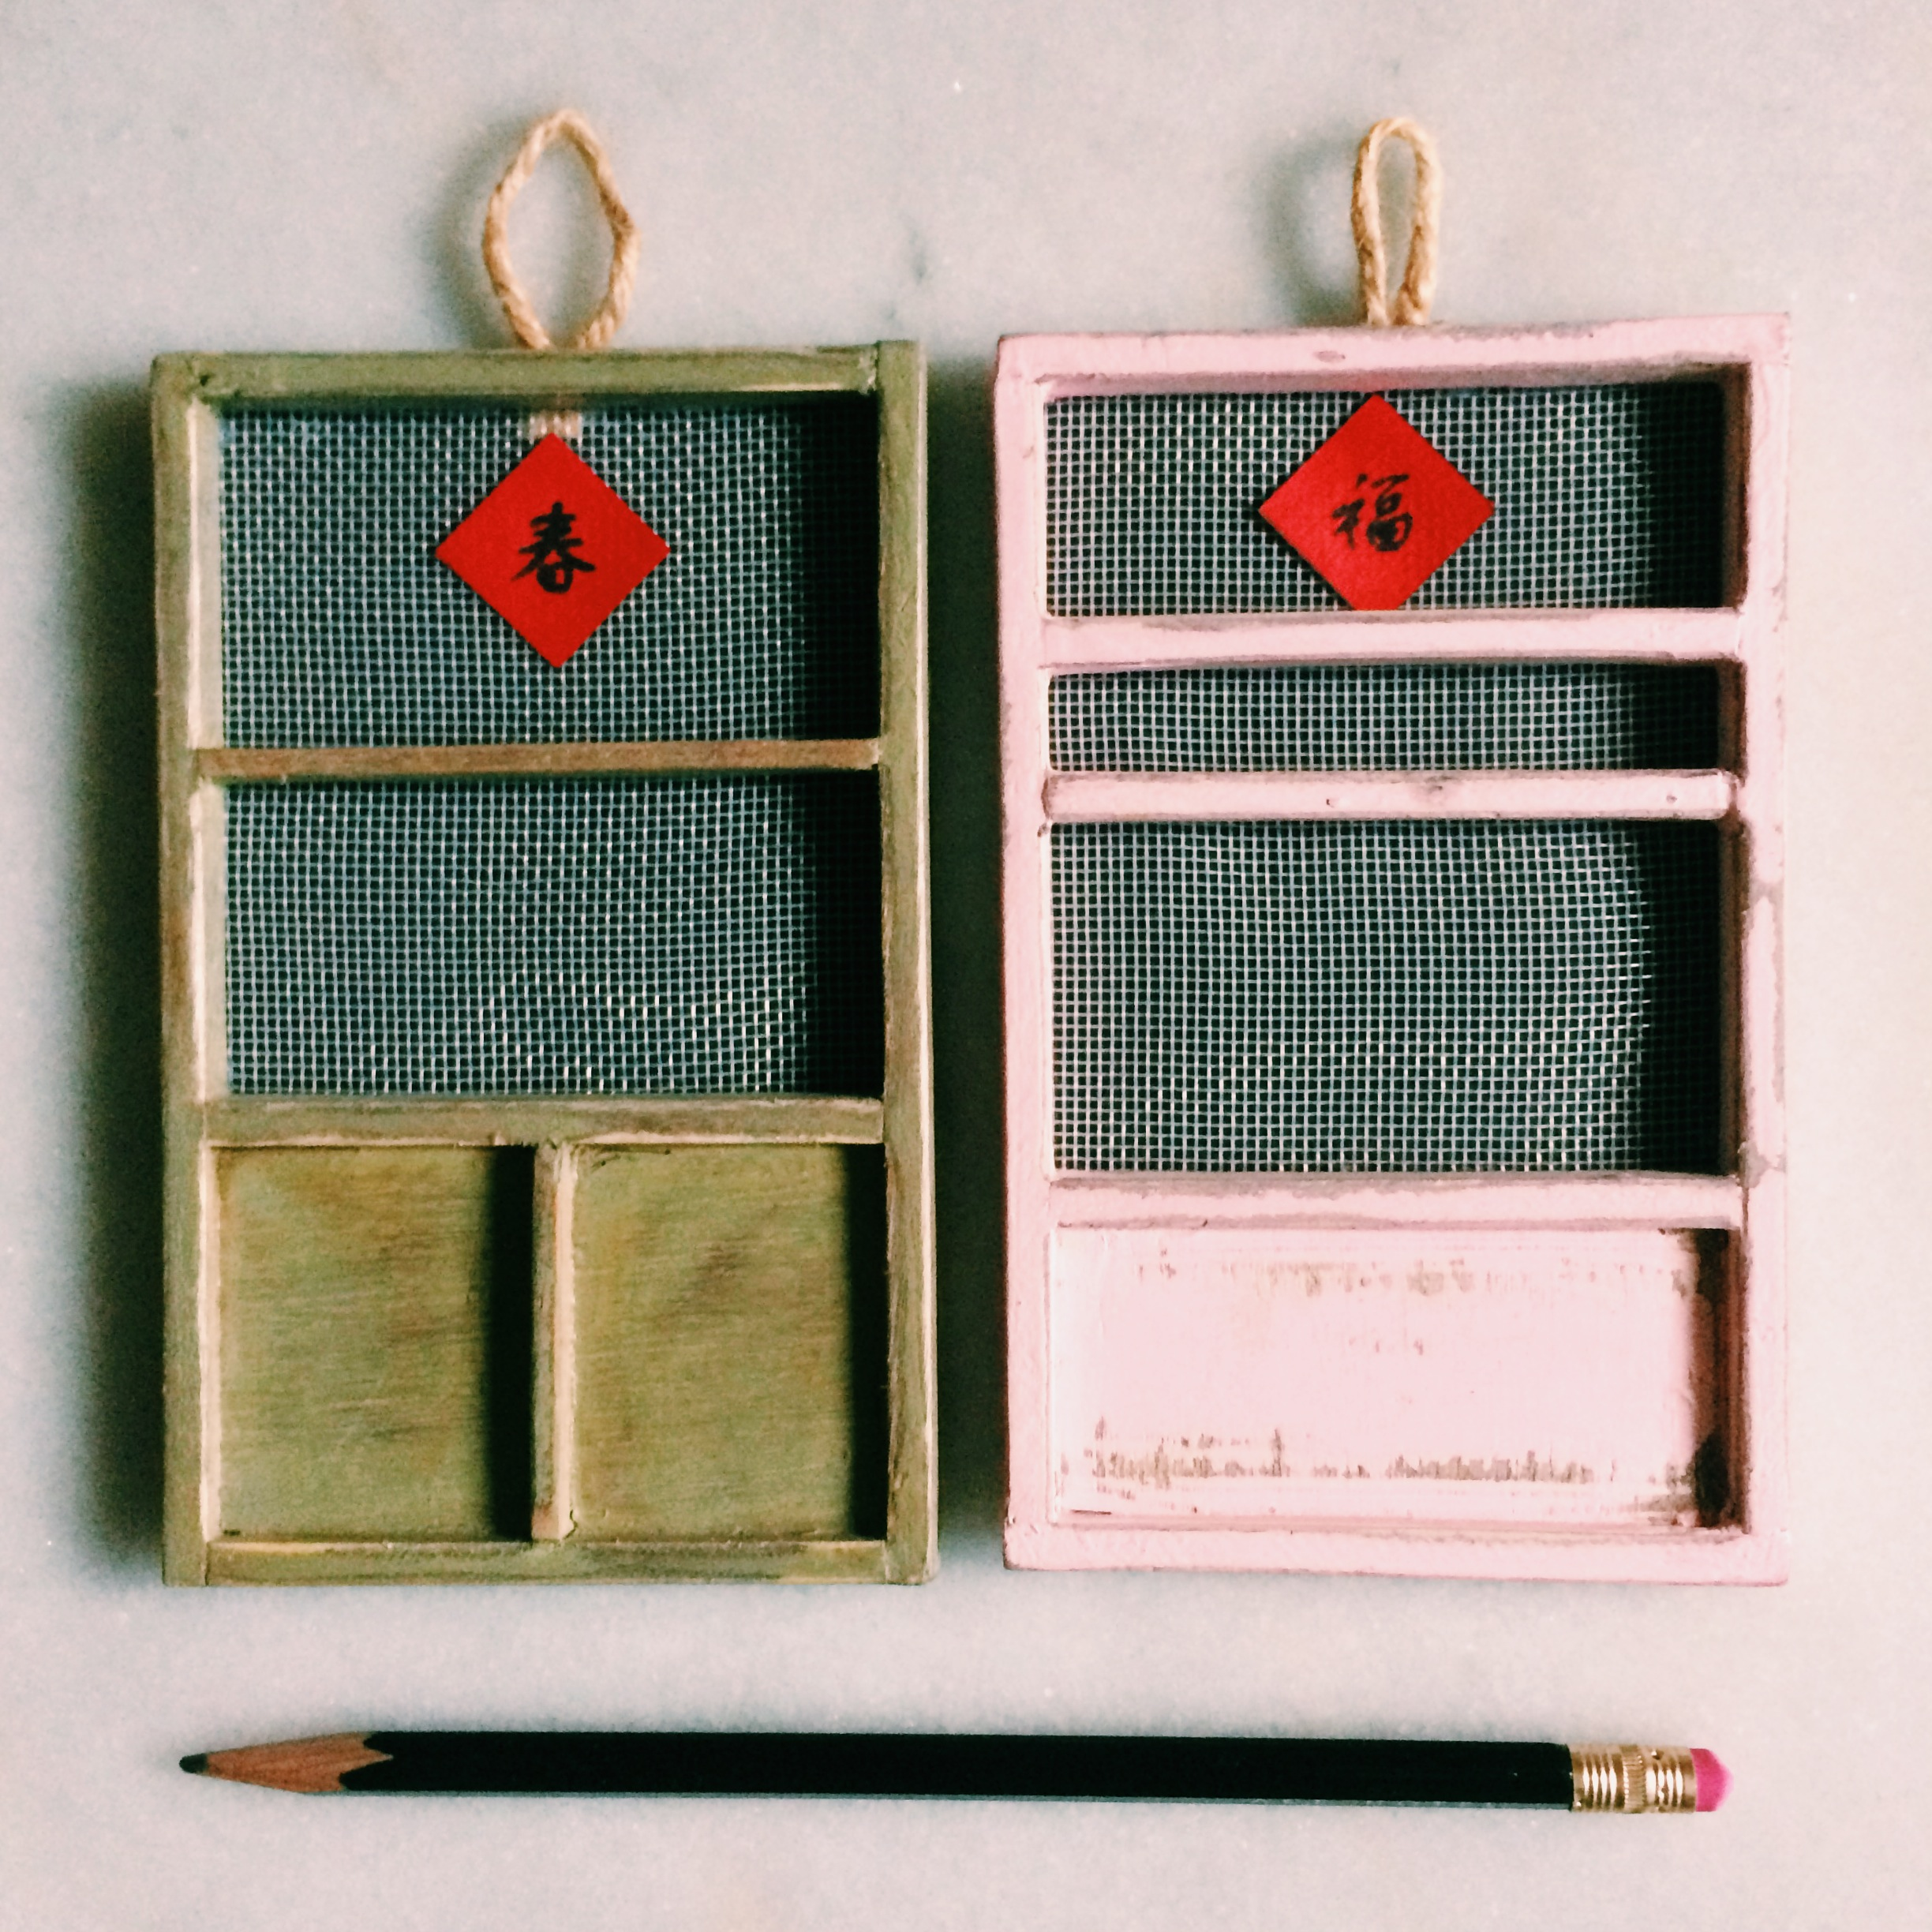 tiny replicas of traditional taiwanese doors that remind me of the ones at my grandparents' house.